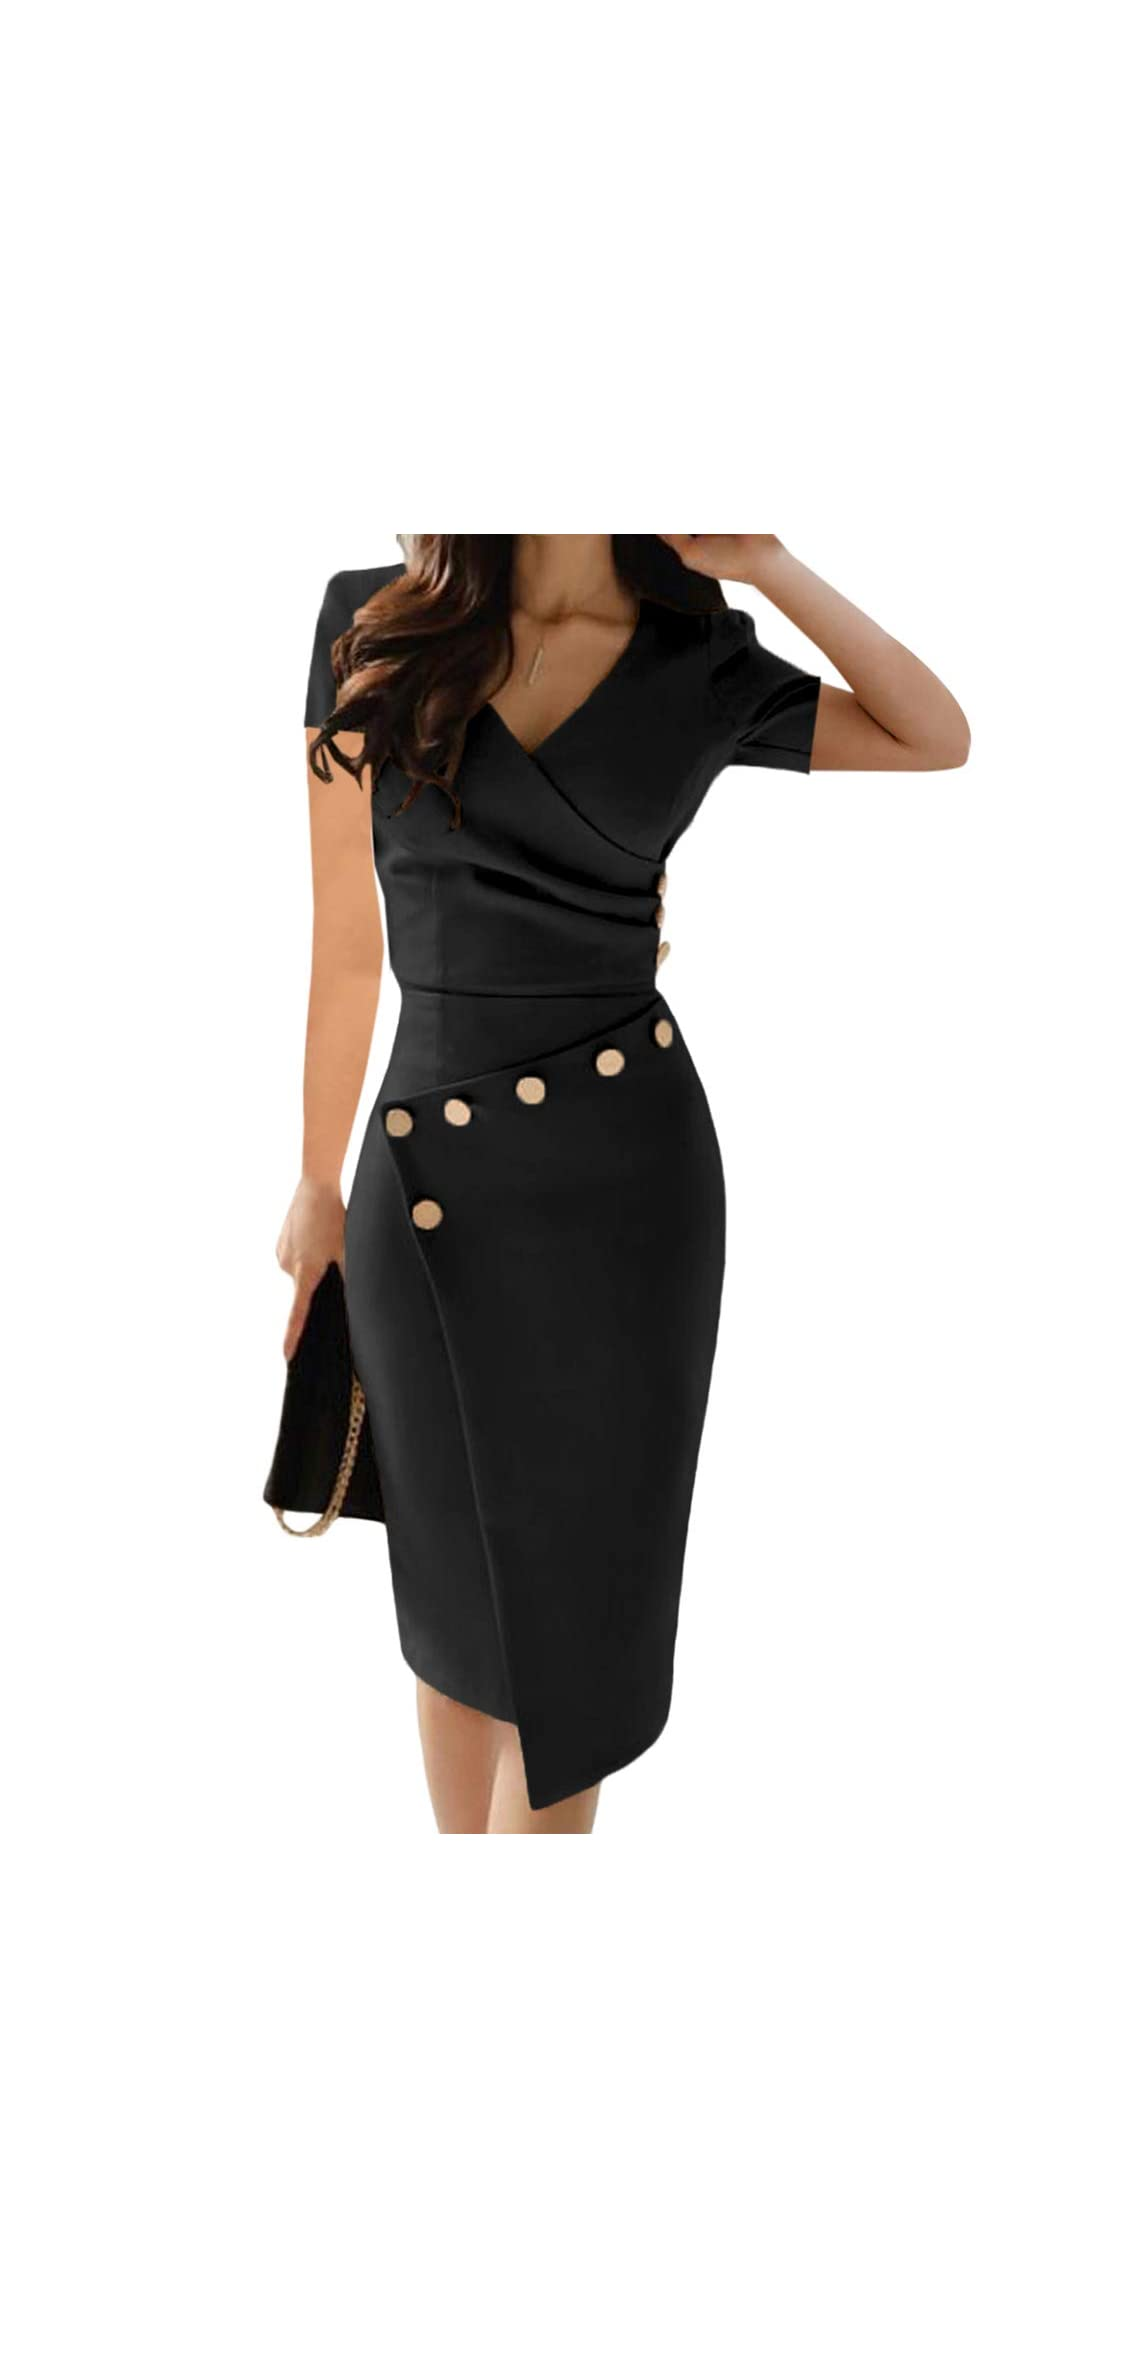 Women's Deep V Neck Casual Work Bodycon Cocktail Party